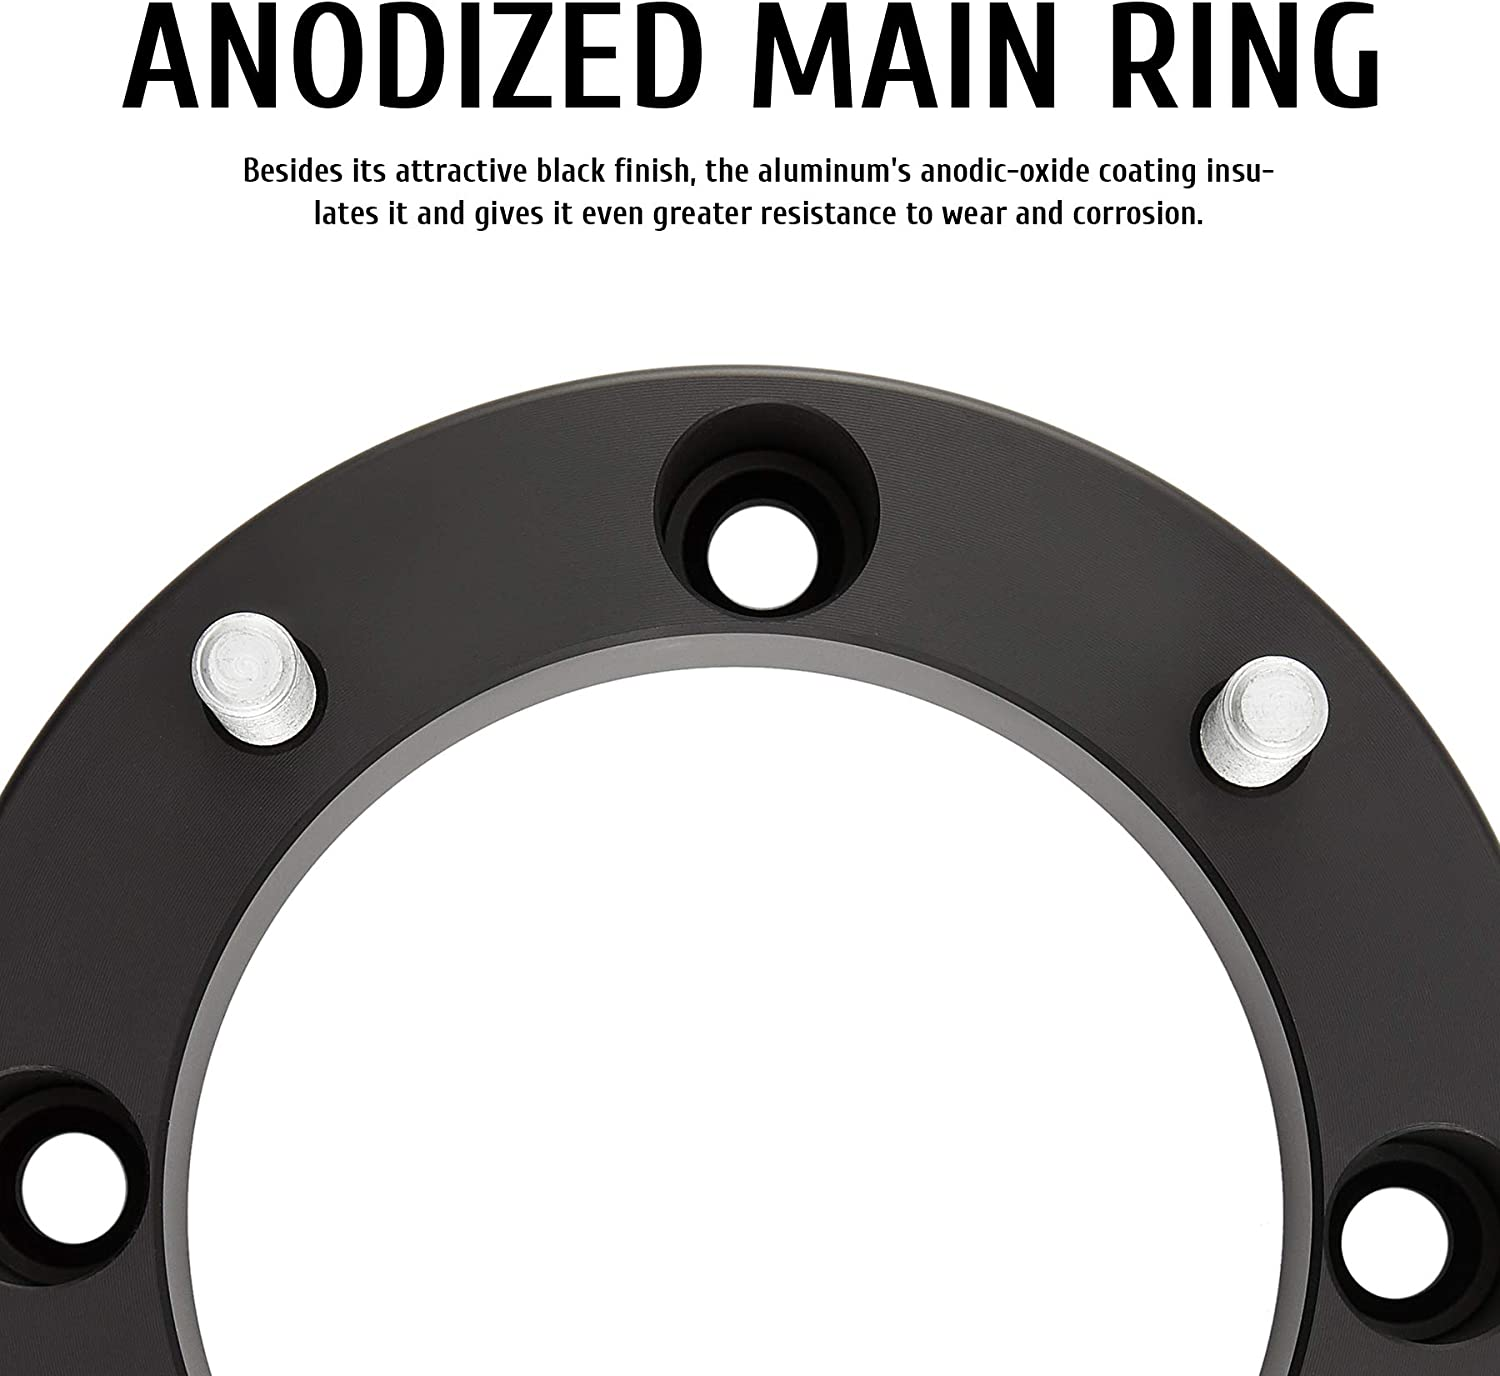 2 inch Black Wheel Adapters with Studs for Polaris Ranger Polaris RZR XP 1000 Trail 900 and More 50mm Quad Four Wheeler Spacer Kit and Accessories Set of 4 Orion Motor Tech 4x156 ATV Wheel Spacers